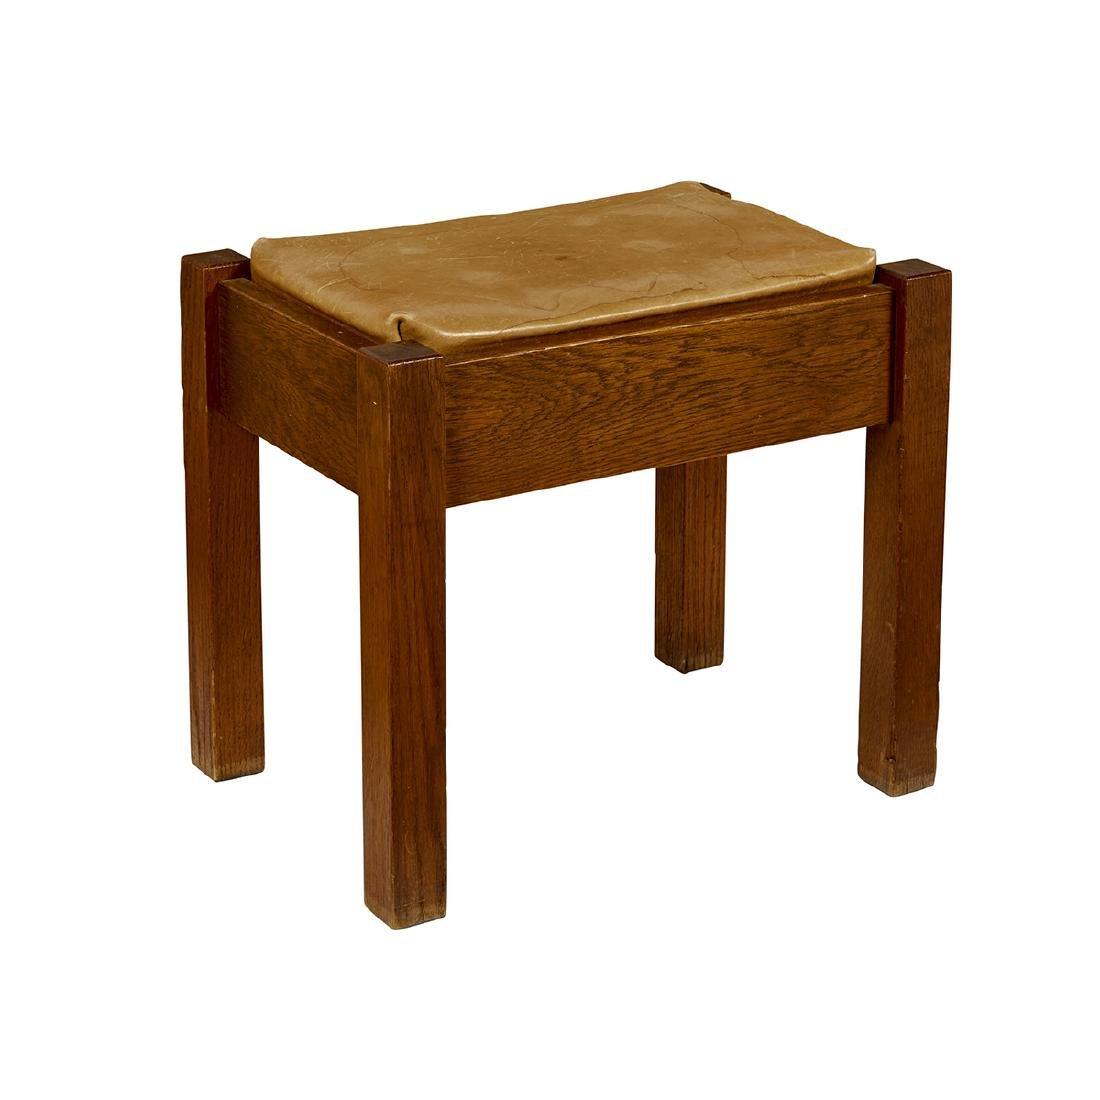 Stickley Brothers footstool, #5267